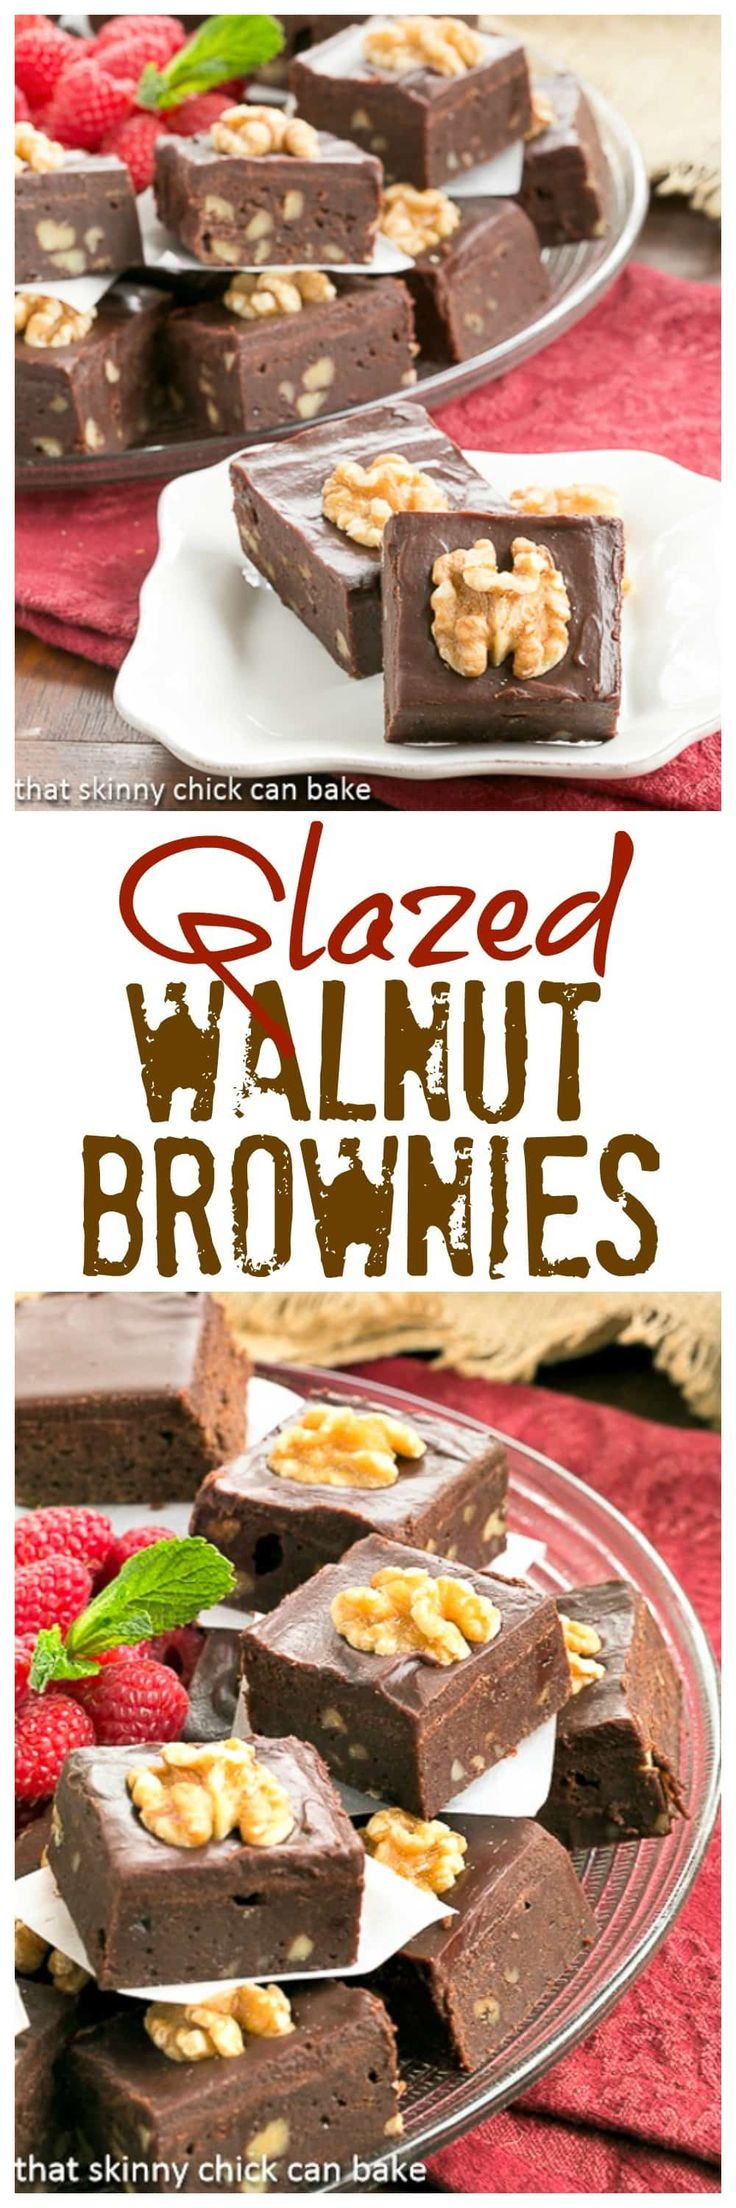 Chocolate Glazed Walnut Brownies | With or without nuts, these are killer!